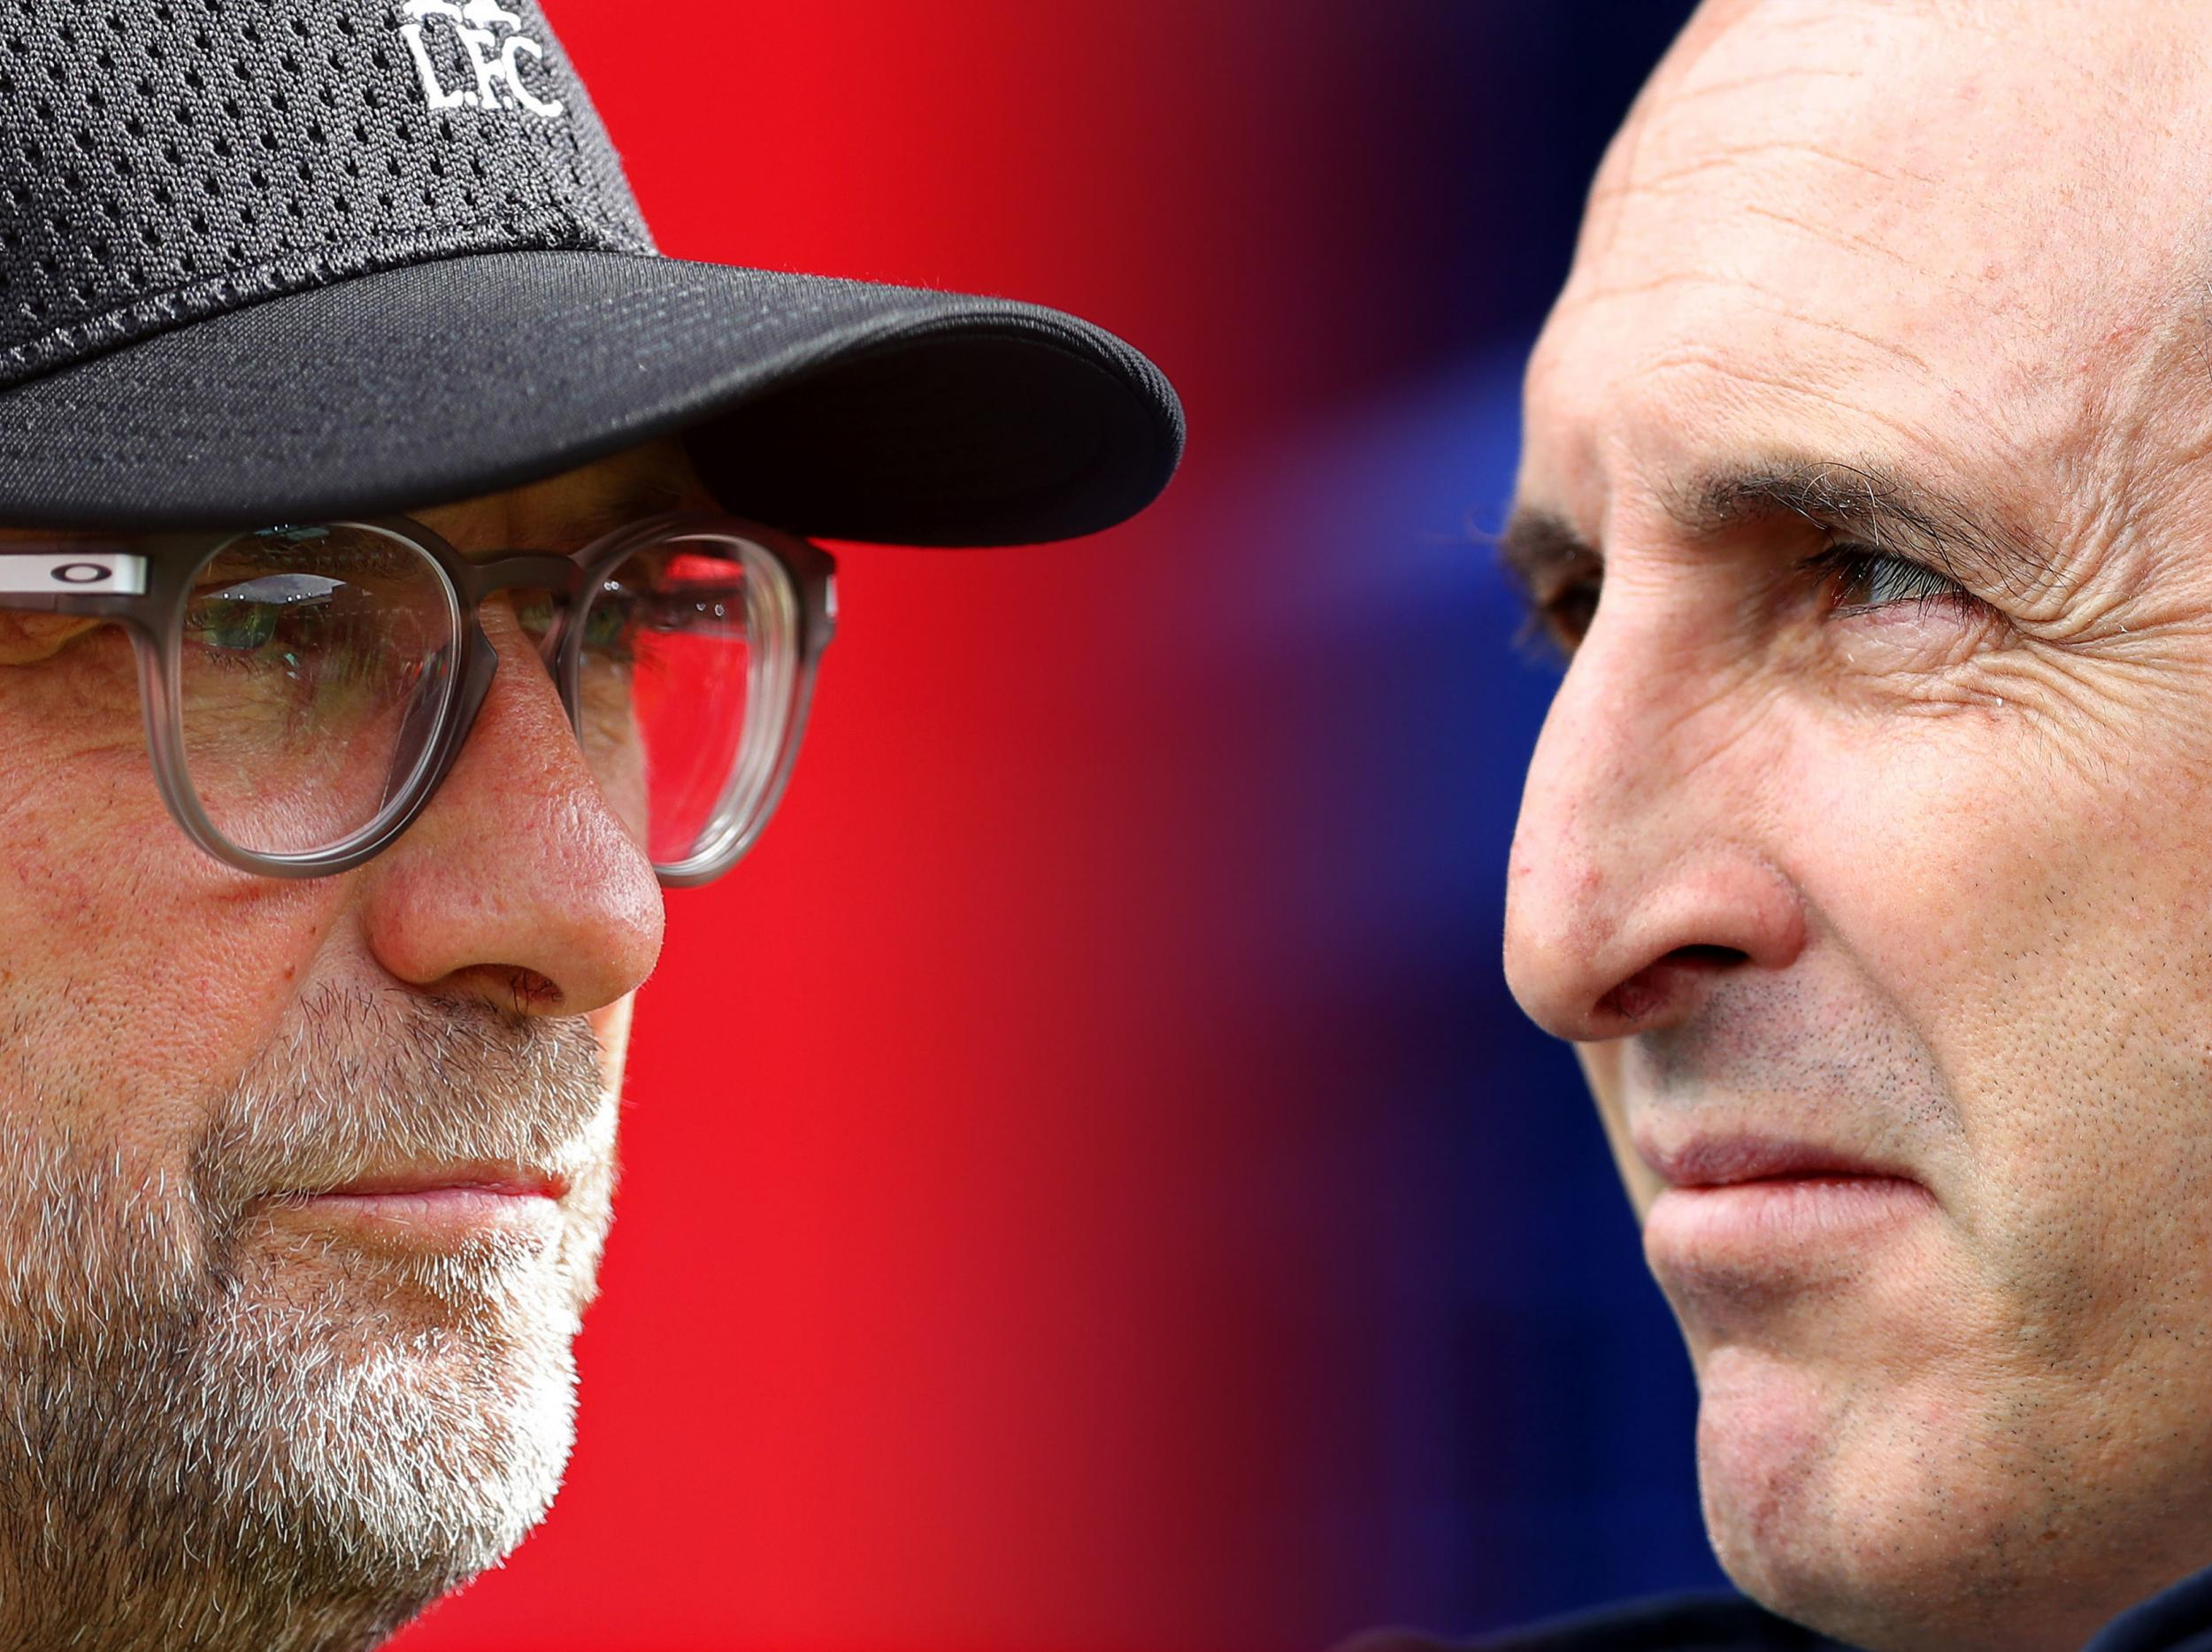 Liverpool vs Arsenal predicted line-ups: Team news and injury latest ahead of Premier League clash